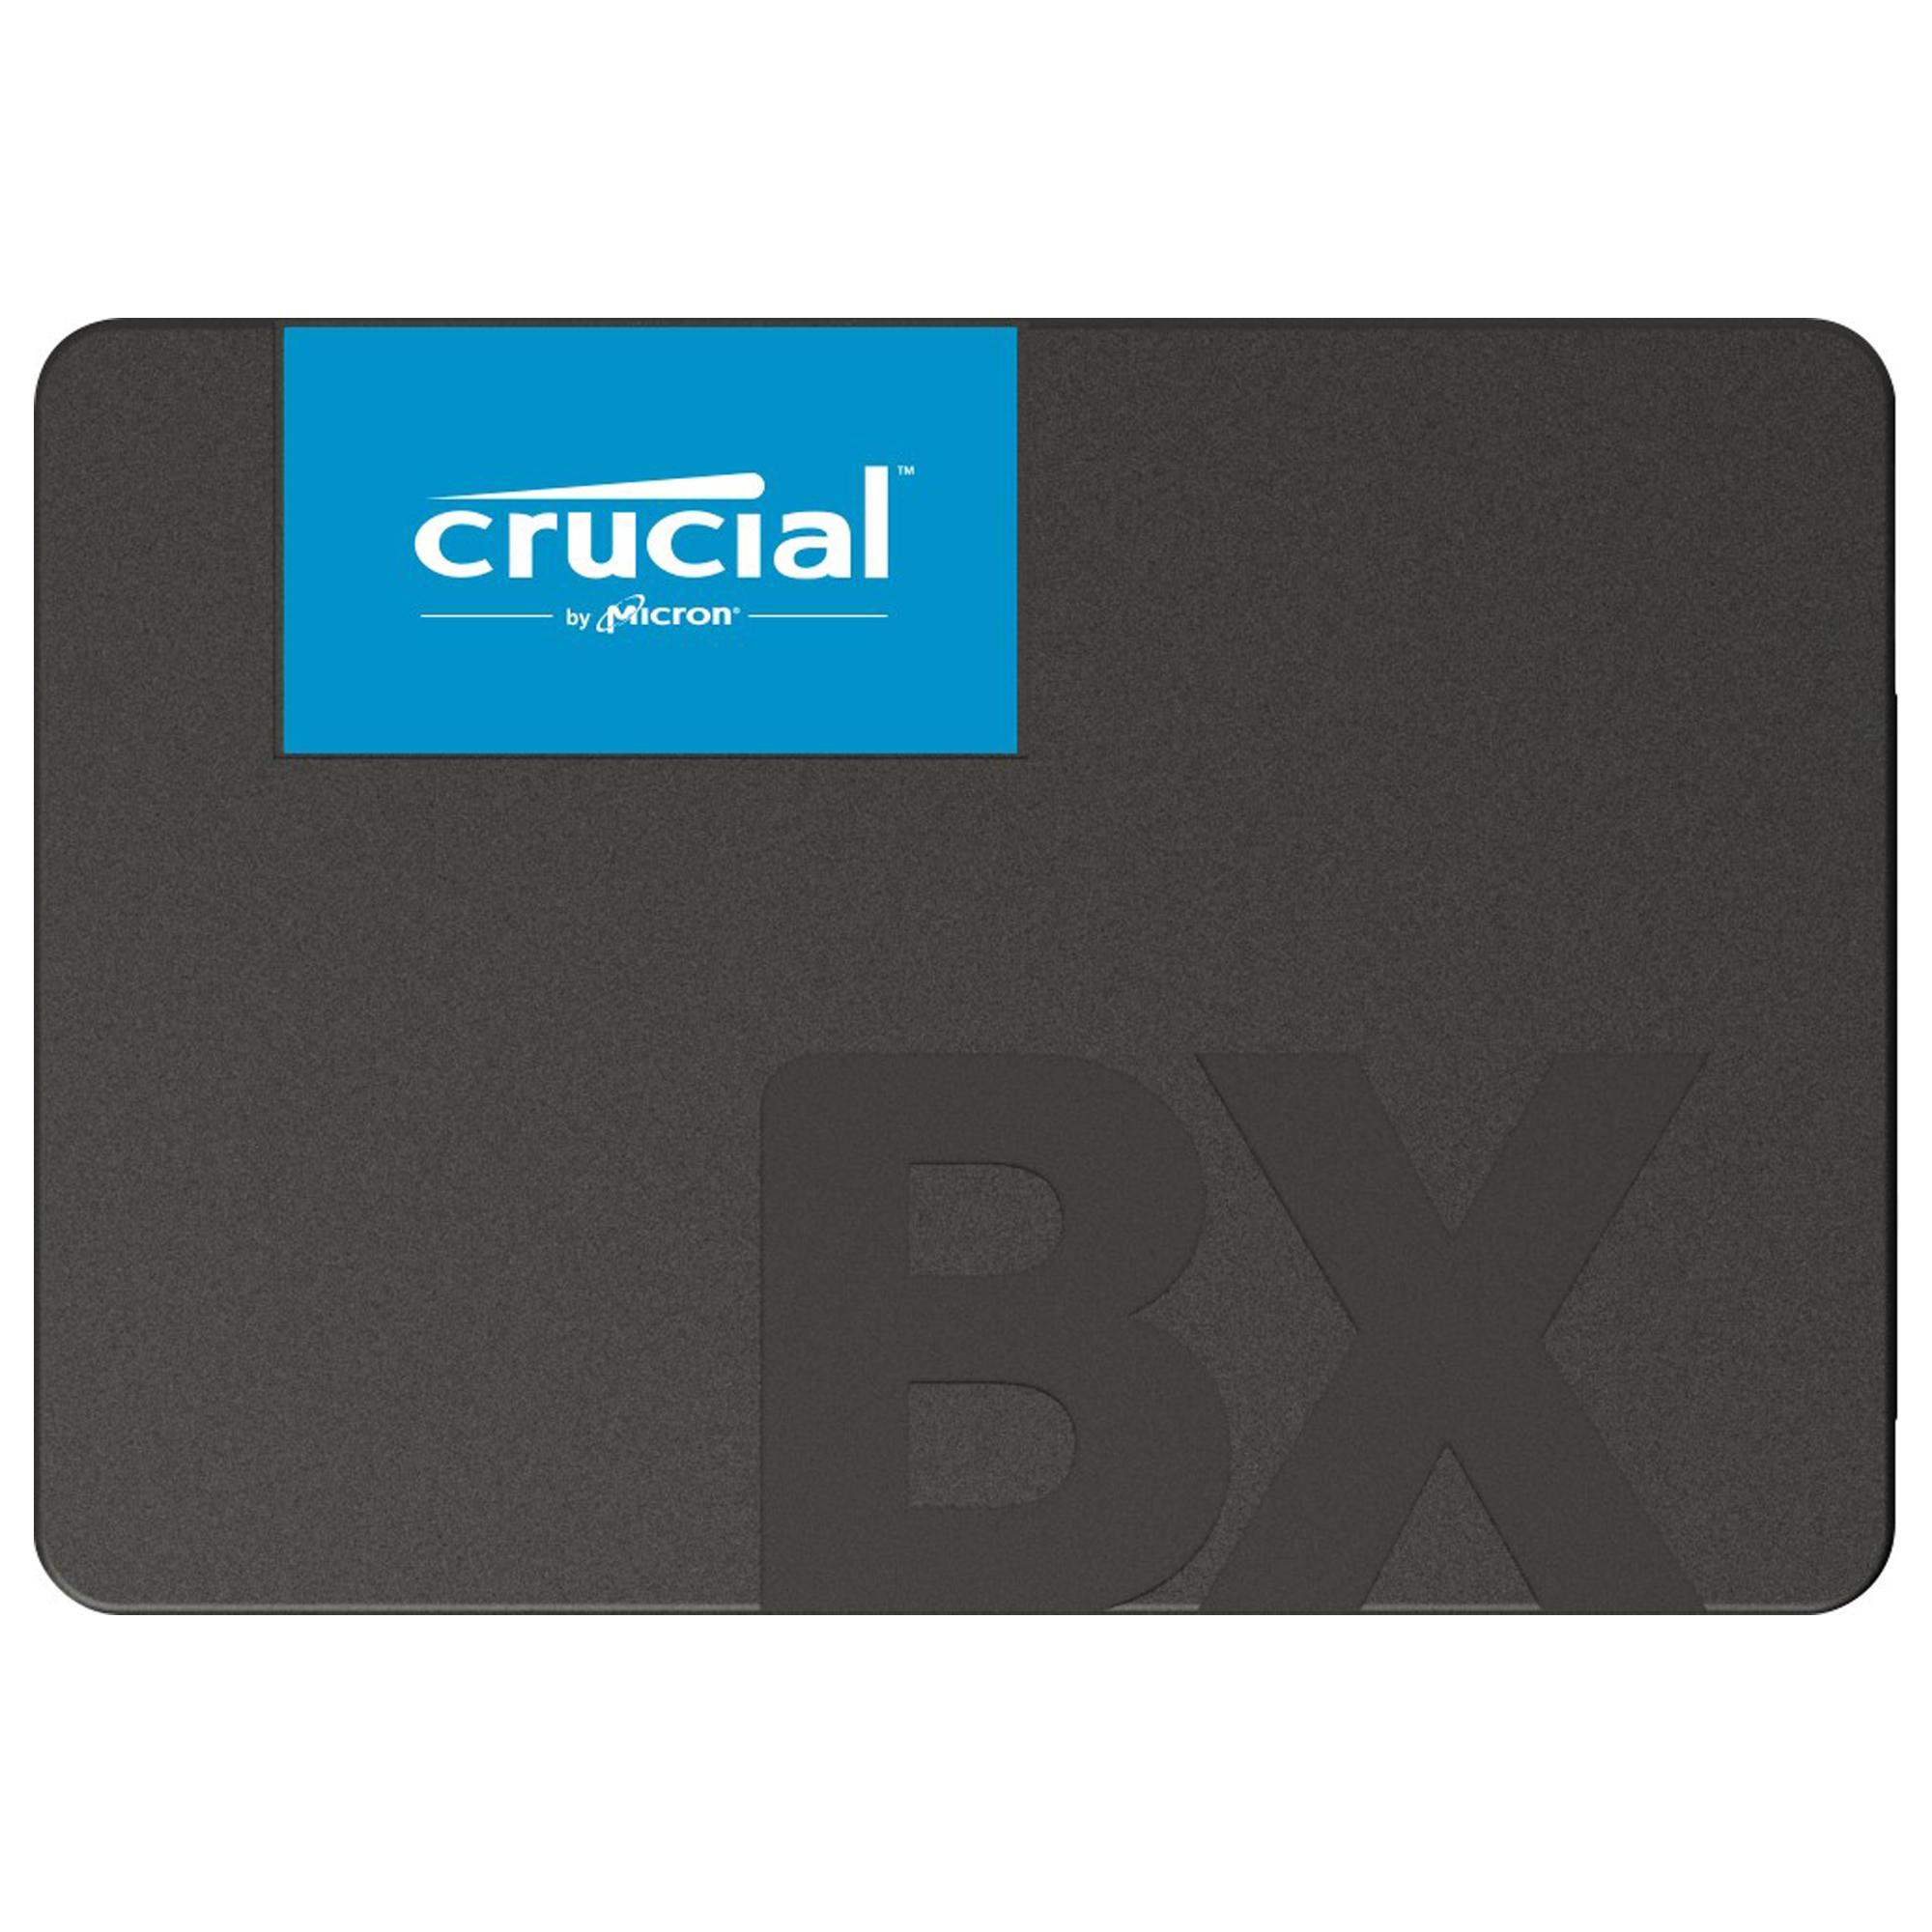 Crucial Philippines Price List Ssd Ram For Sale Lazada Team Elite So Dimm 4gb Ddr4 Pc2133 Notebook Bx500 240gb 3d Nand Sata 25 Solid State Drive Ct240bx500ssd1